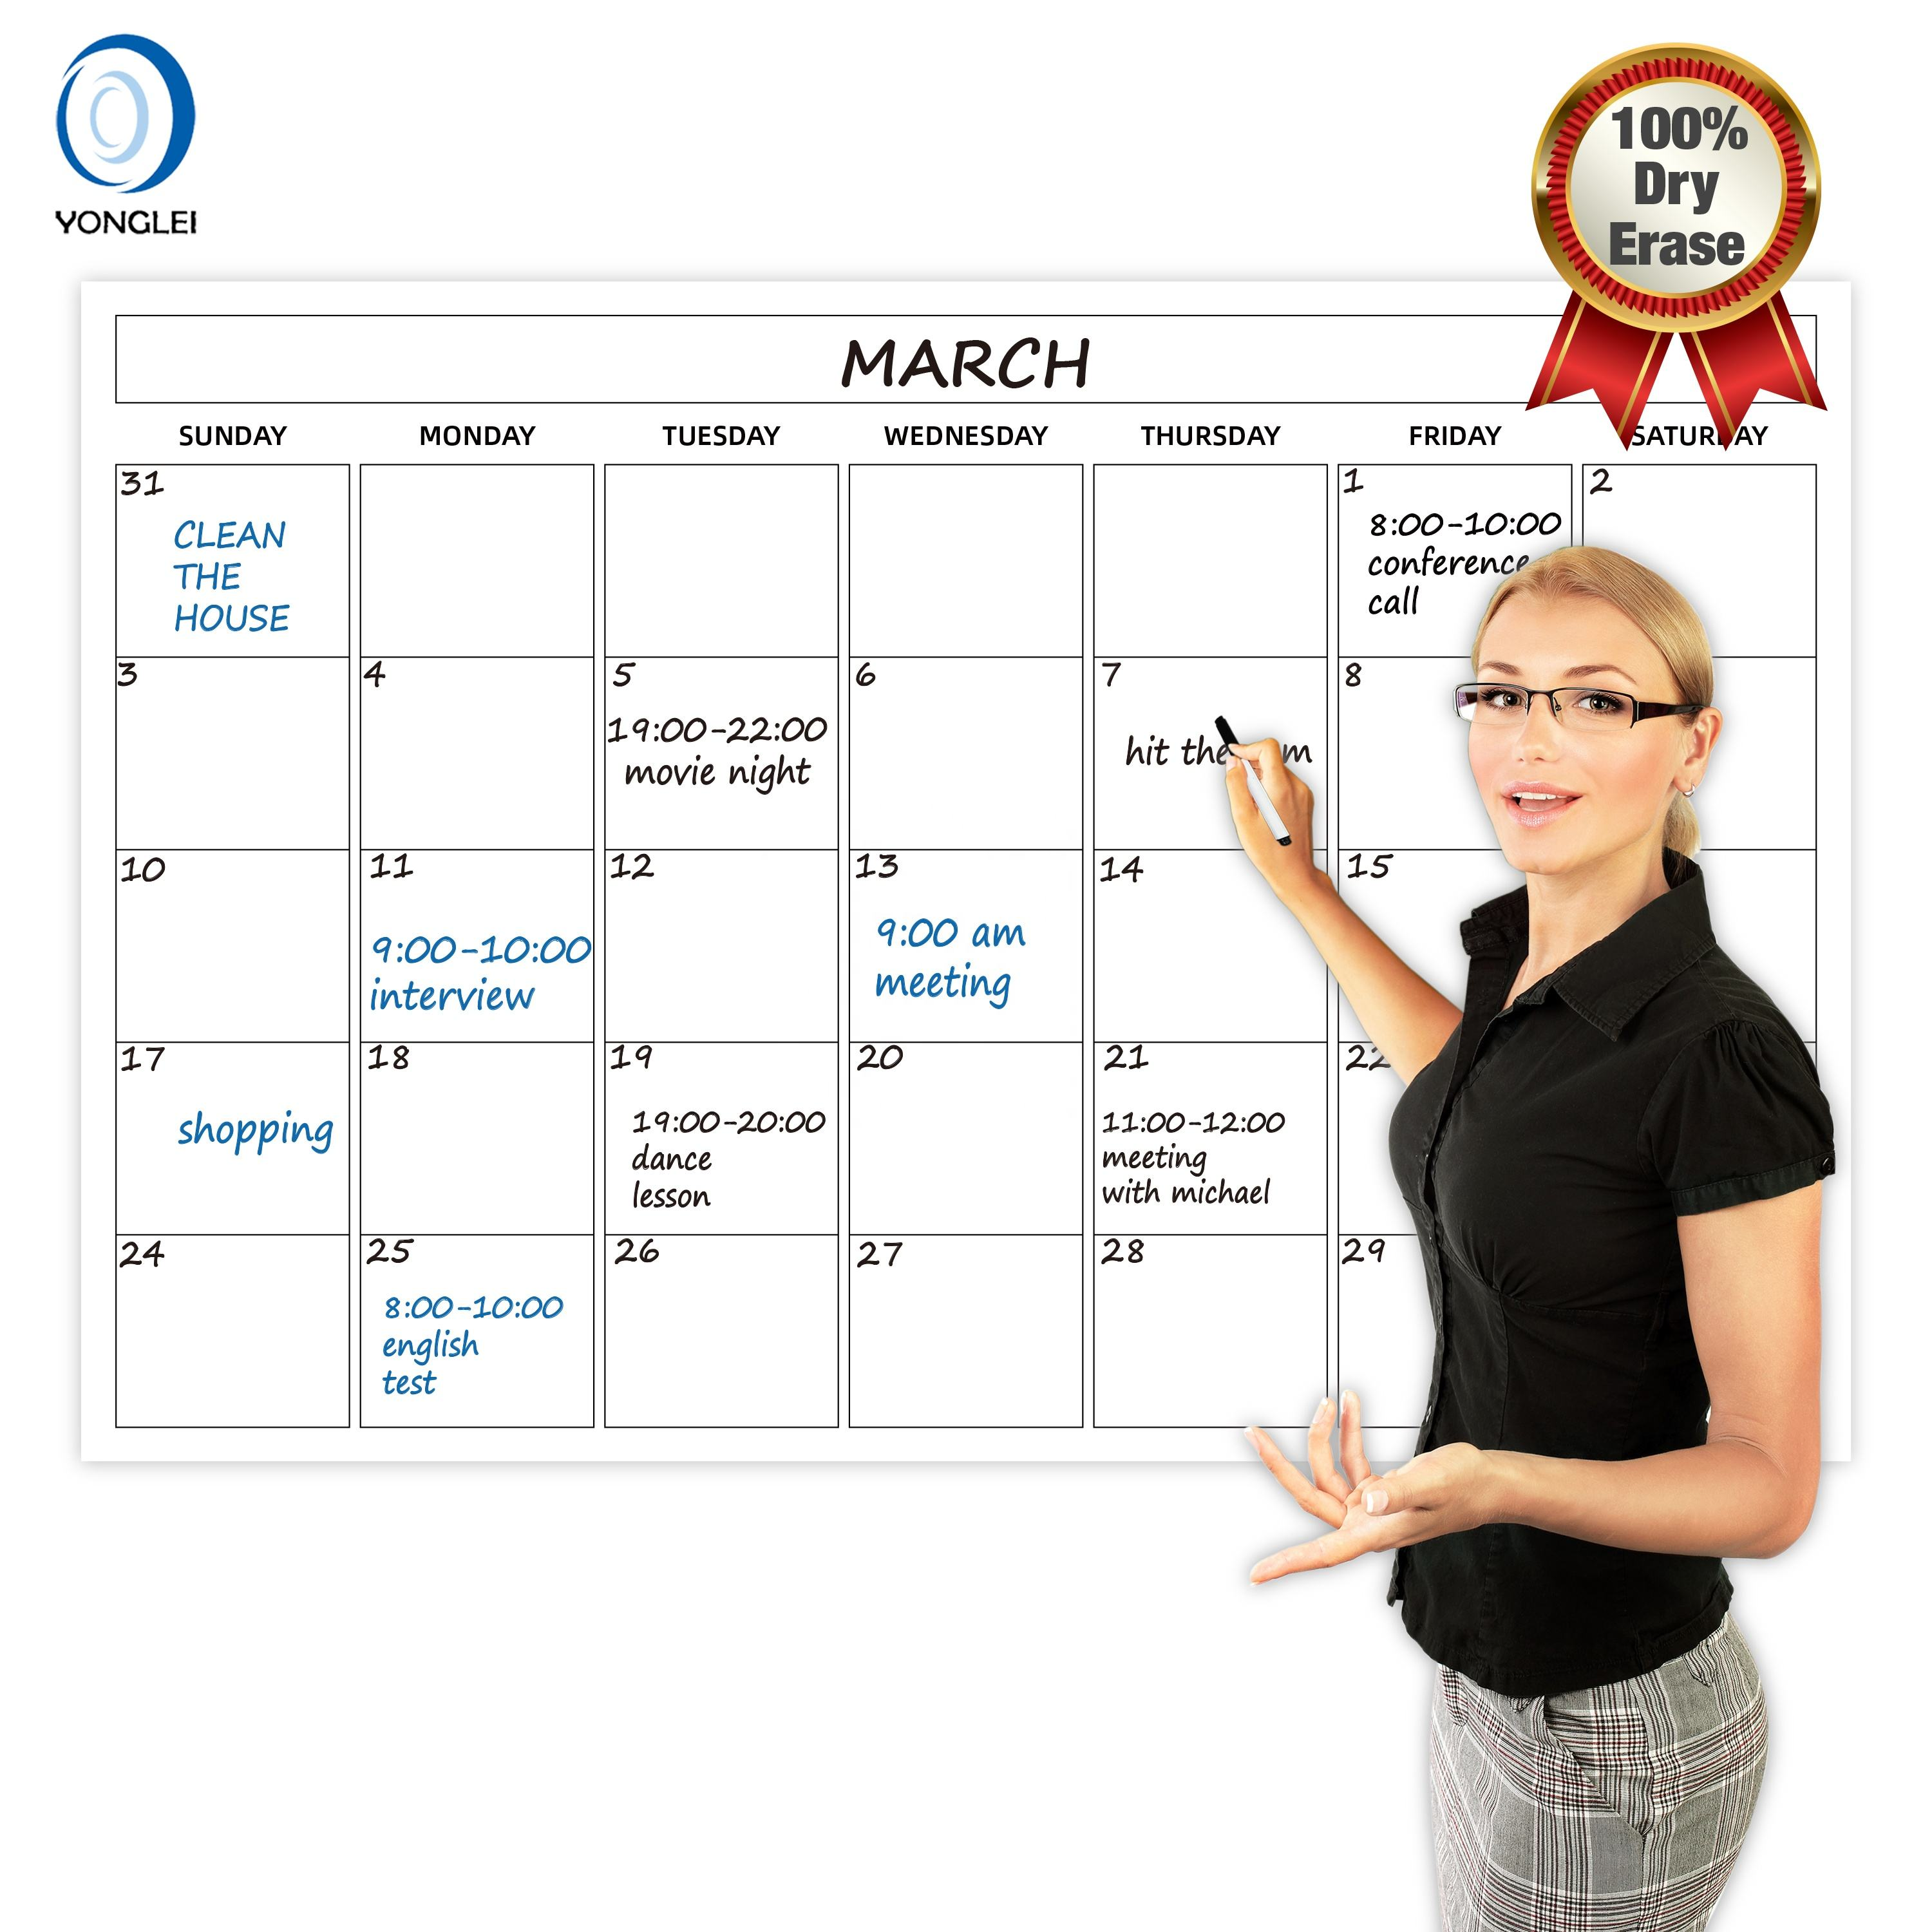 024-4A2 Nanotechnology dry erase reusable calendar custom office calendar 36x24 wall calendar